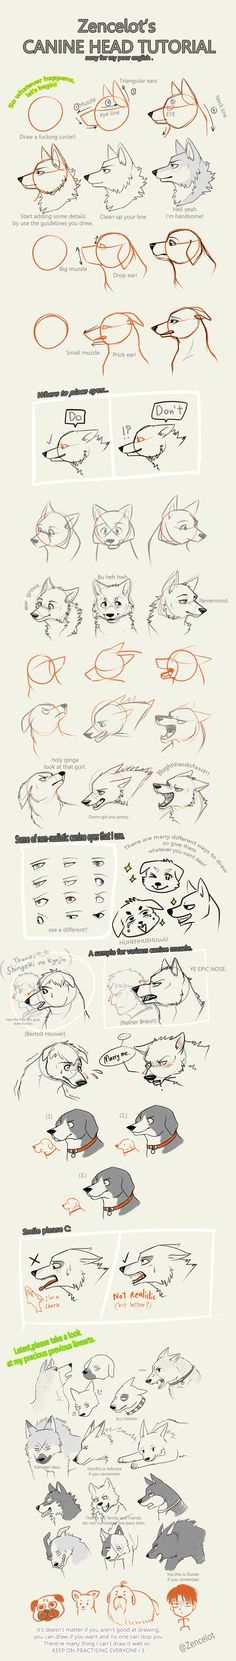 zency_s_canine_head_tutorial_by_zencelot-d6rjtt5.png (980×6900)